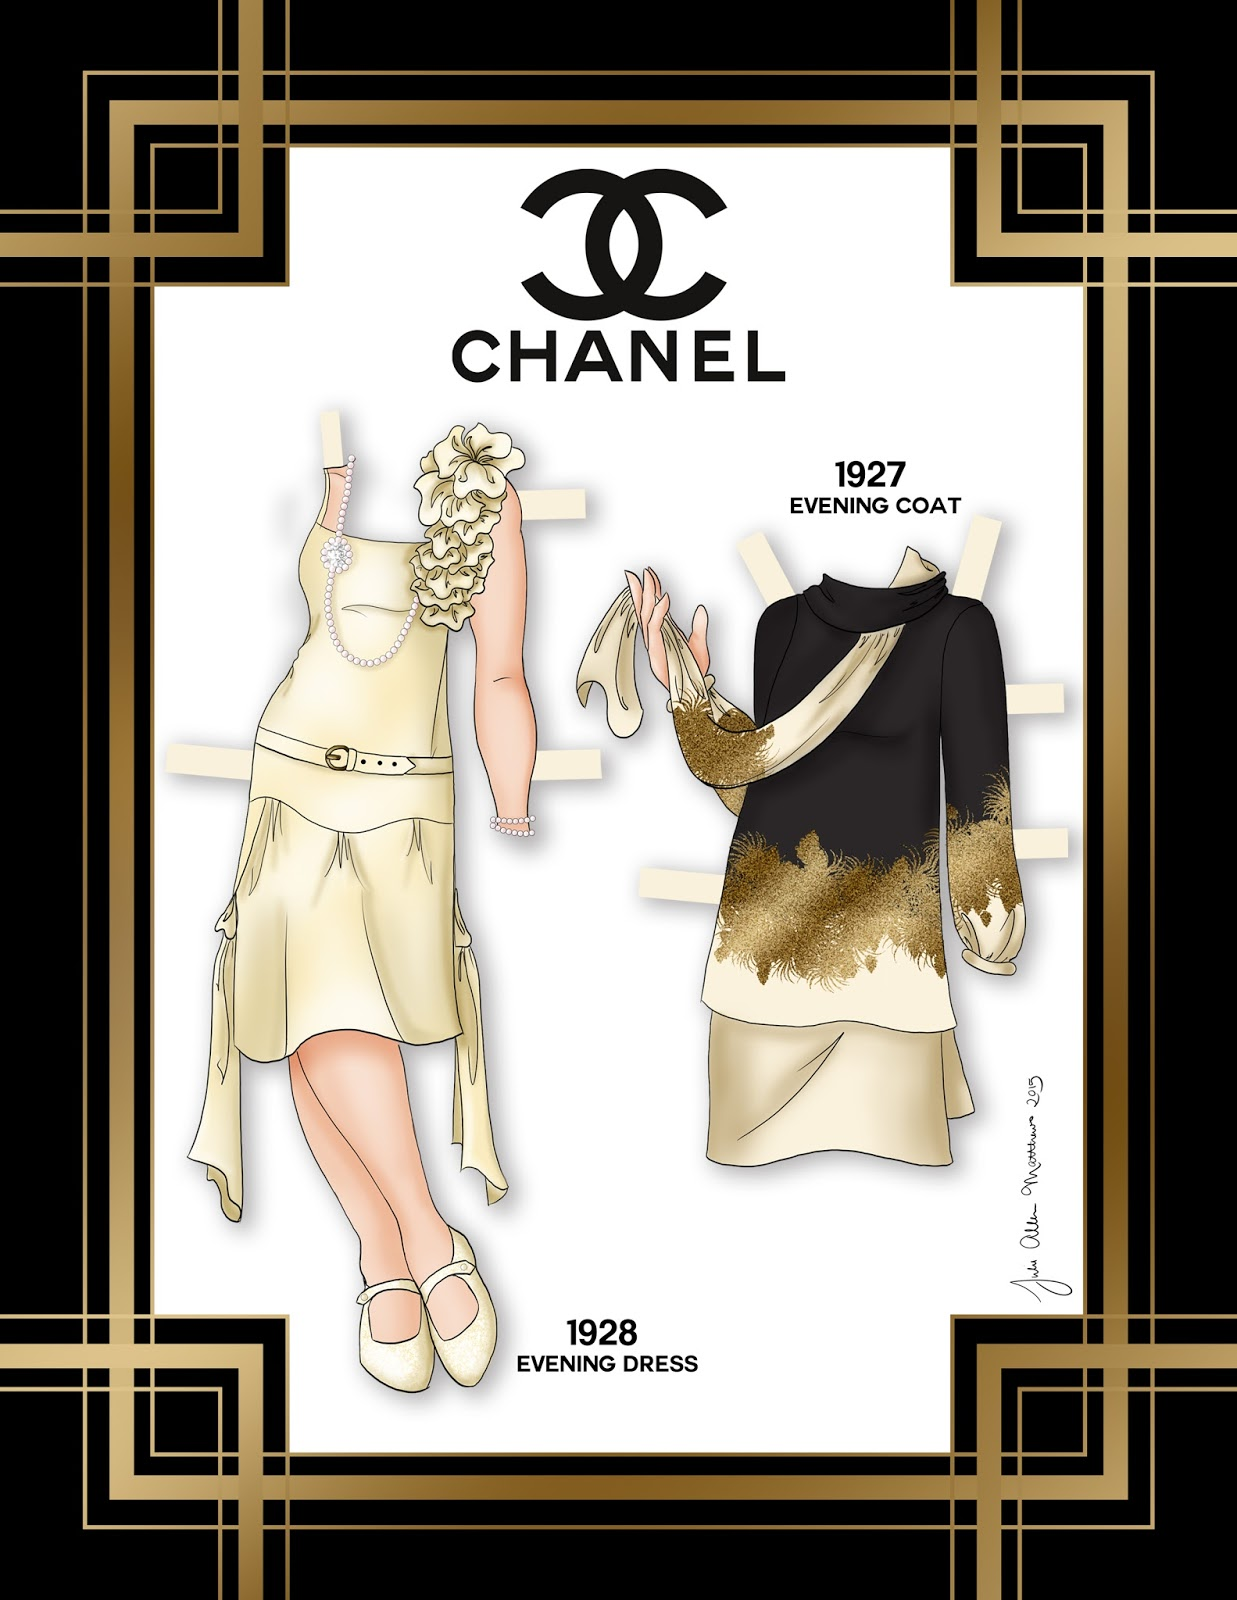 coco chanel essay A fictionalization of the supposed affair formed the basis of the novel coco and igor (2002) and a film, coco chanel & igor stravinsky (2009) despite these alleged liaisons testaments betrayed: an essay in nine parts, translated by linda asher.